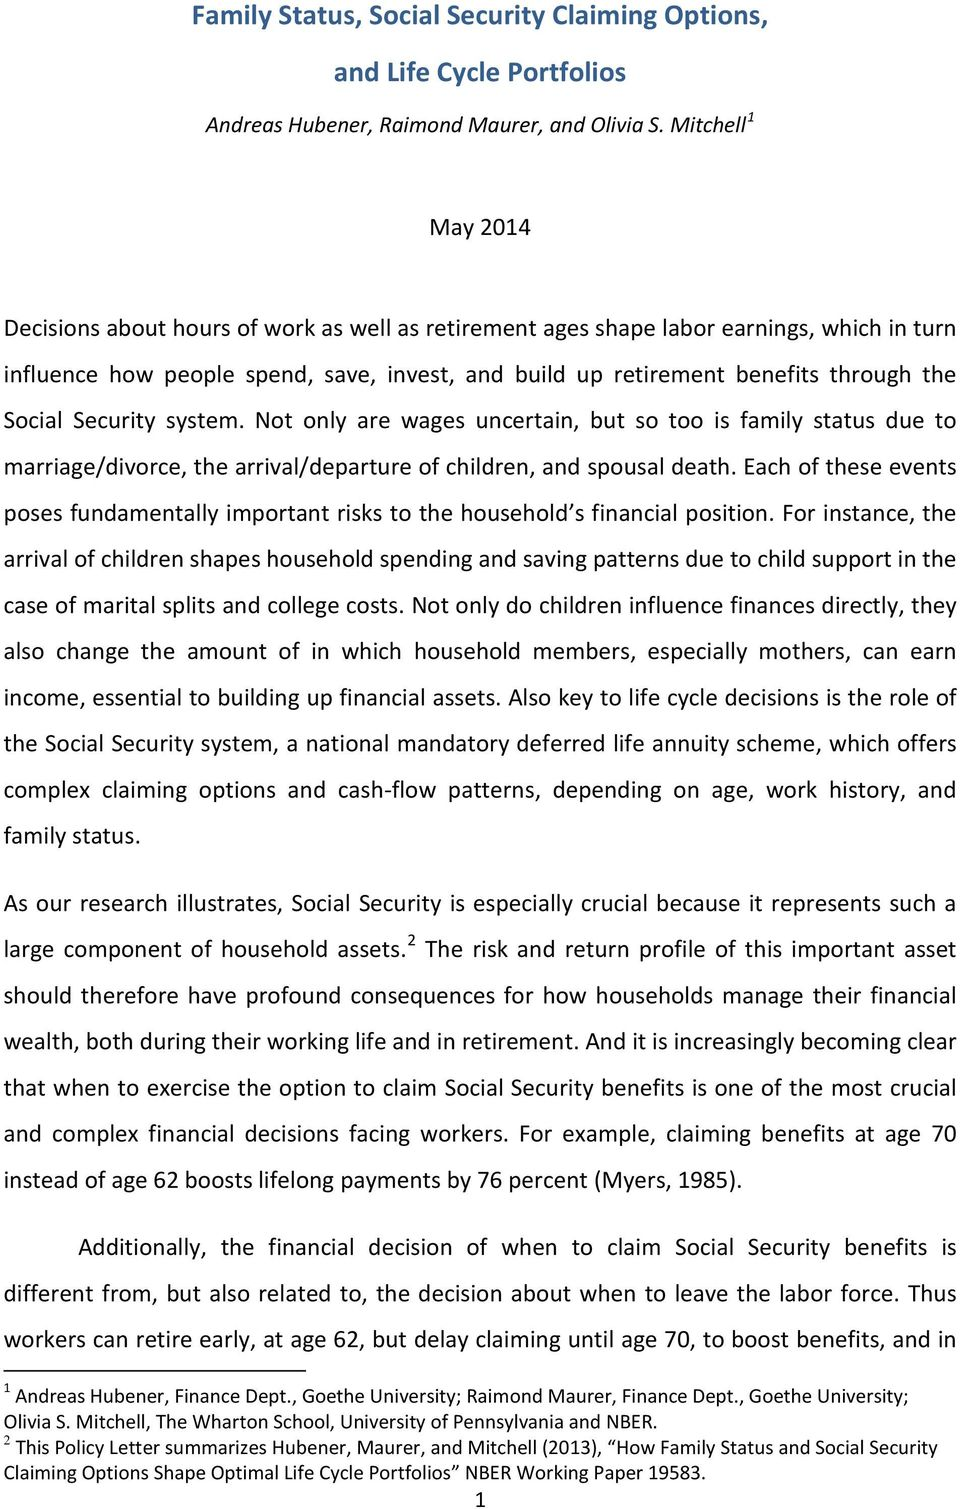 Social Security system. Not only are wages uncertain, but so too is family status due to marriage/divorce, the arrival/departure of children, and spousal death.